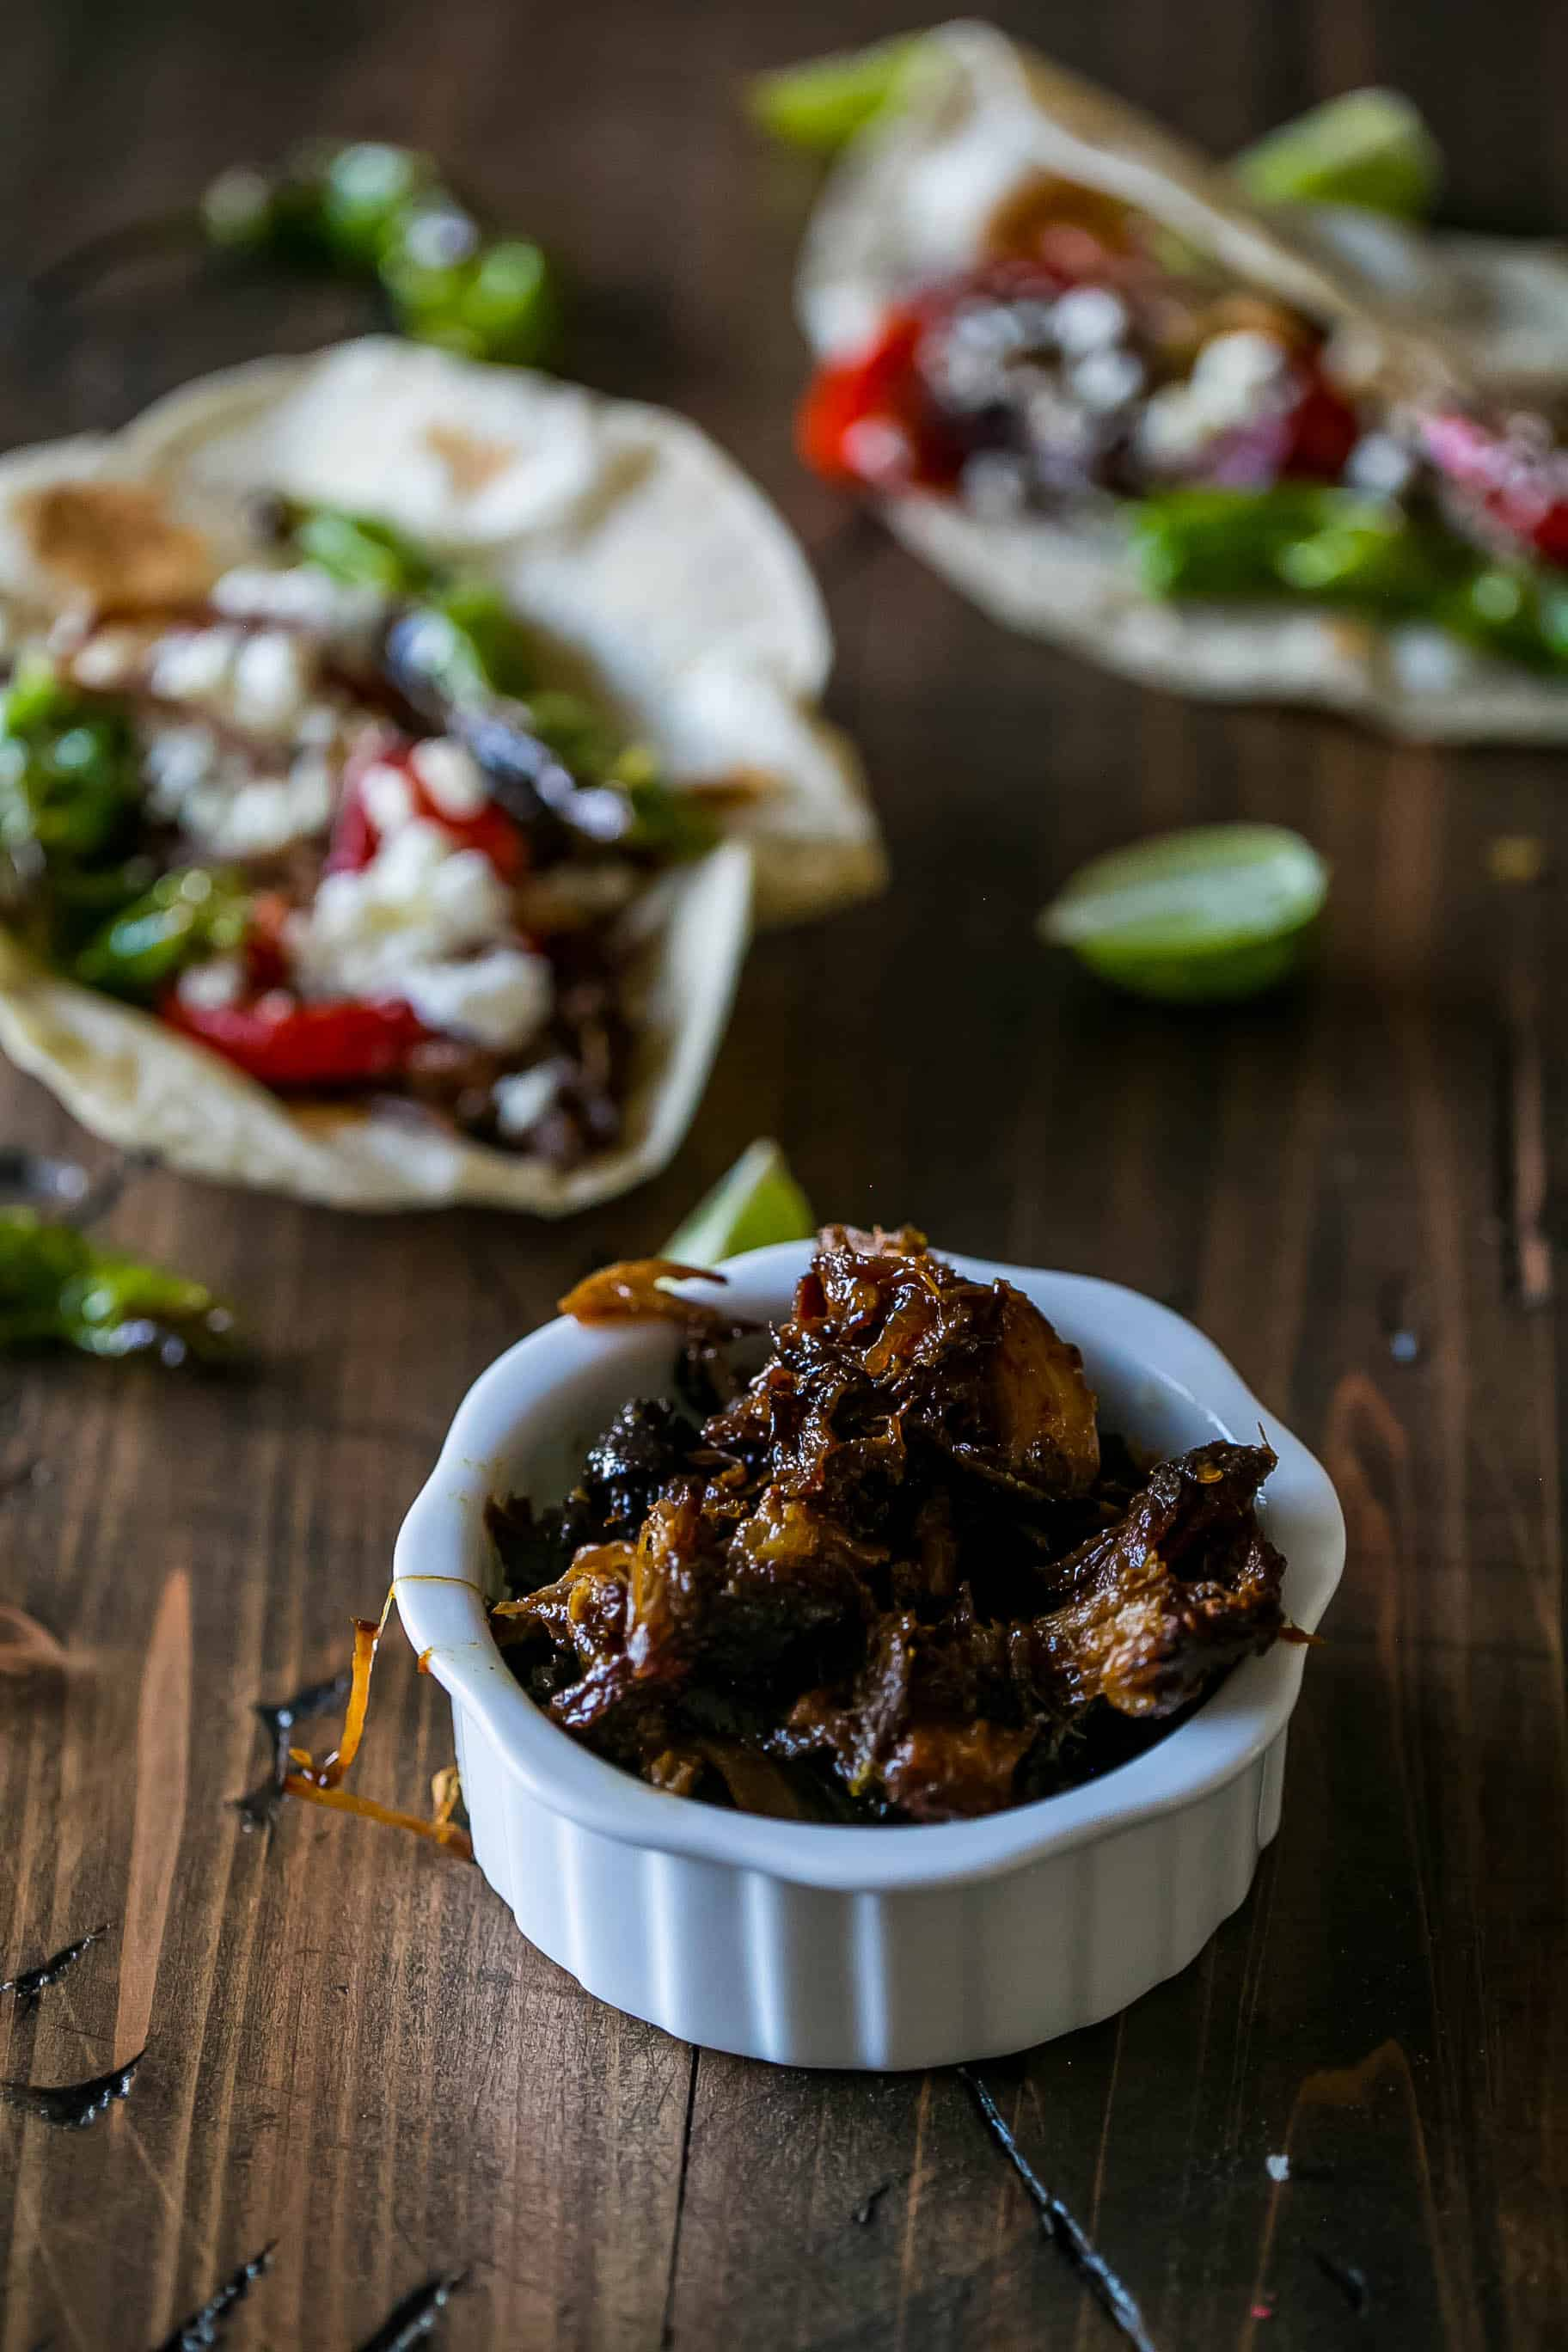 Tequila Habanero Braised Country Ribs - Sweet C's Designs